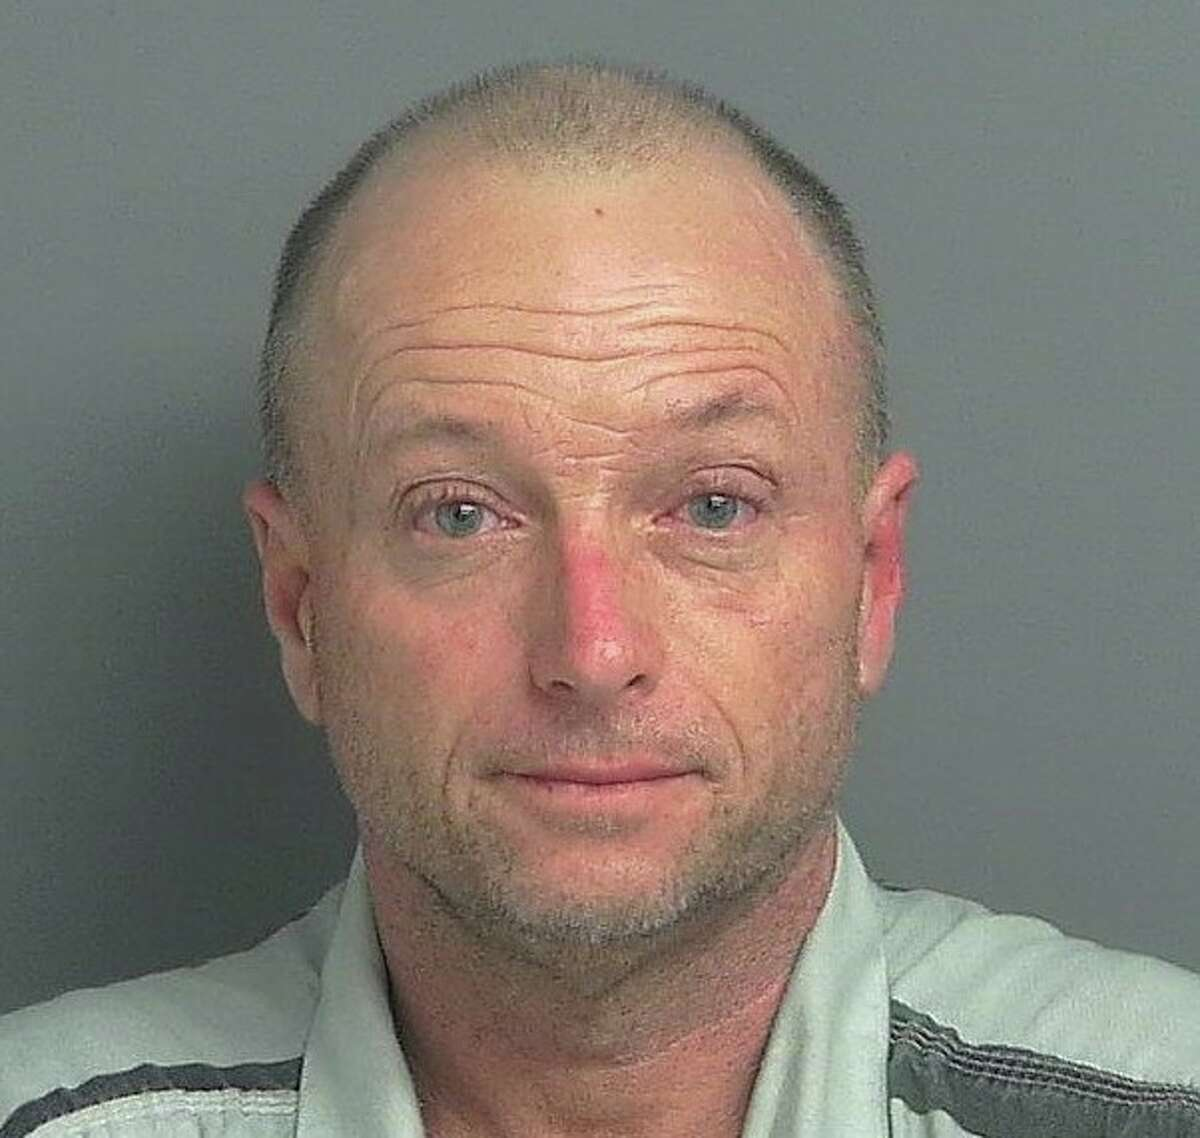 Jeffrey Michael Pitts, 52, of Kingwood, is being charged with two counts of aggravated assault.